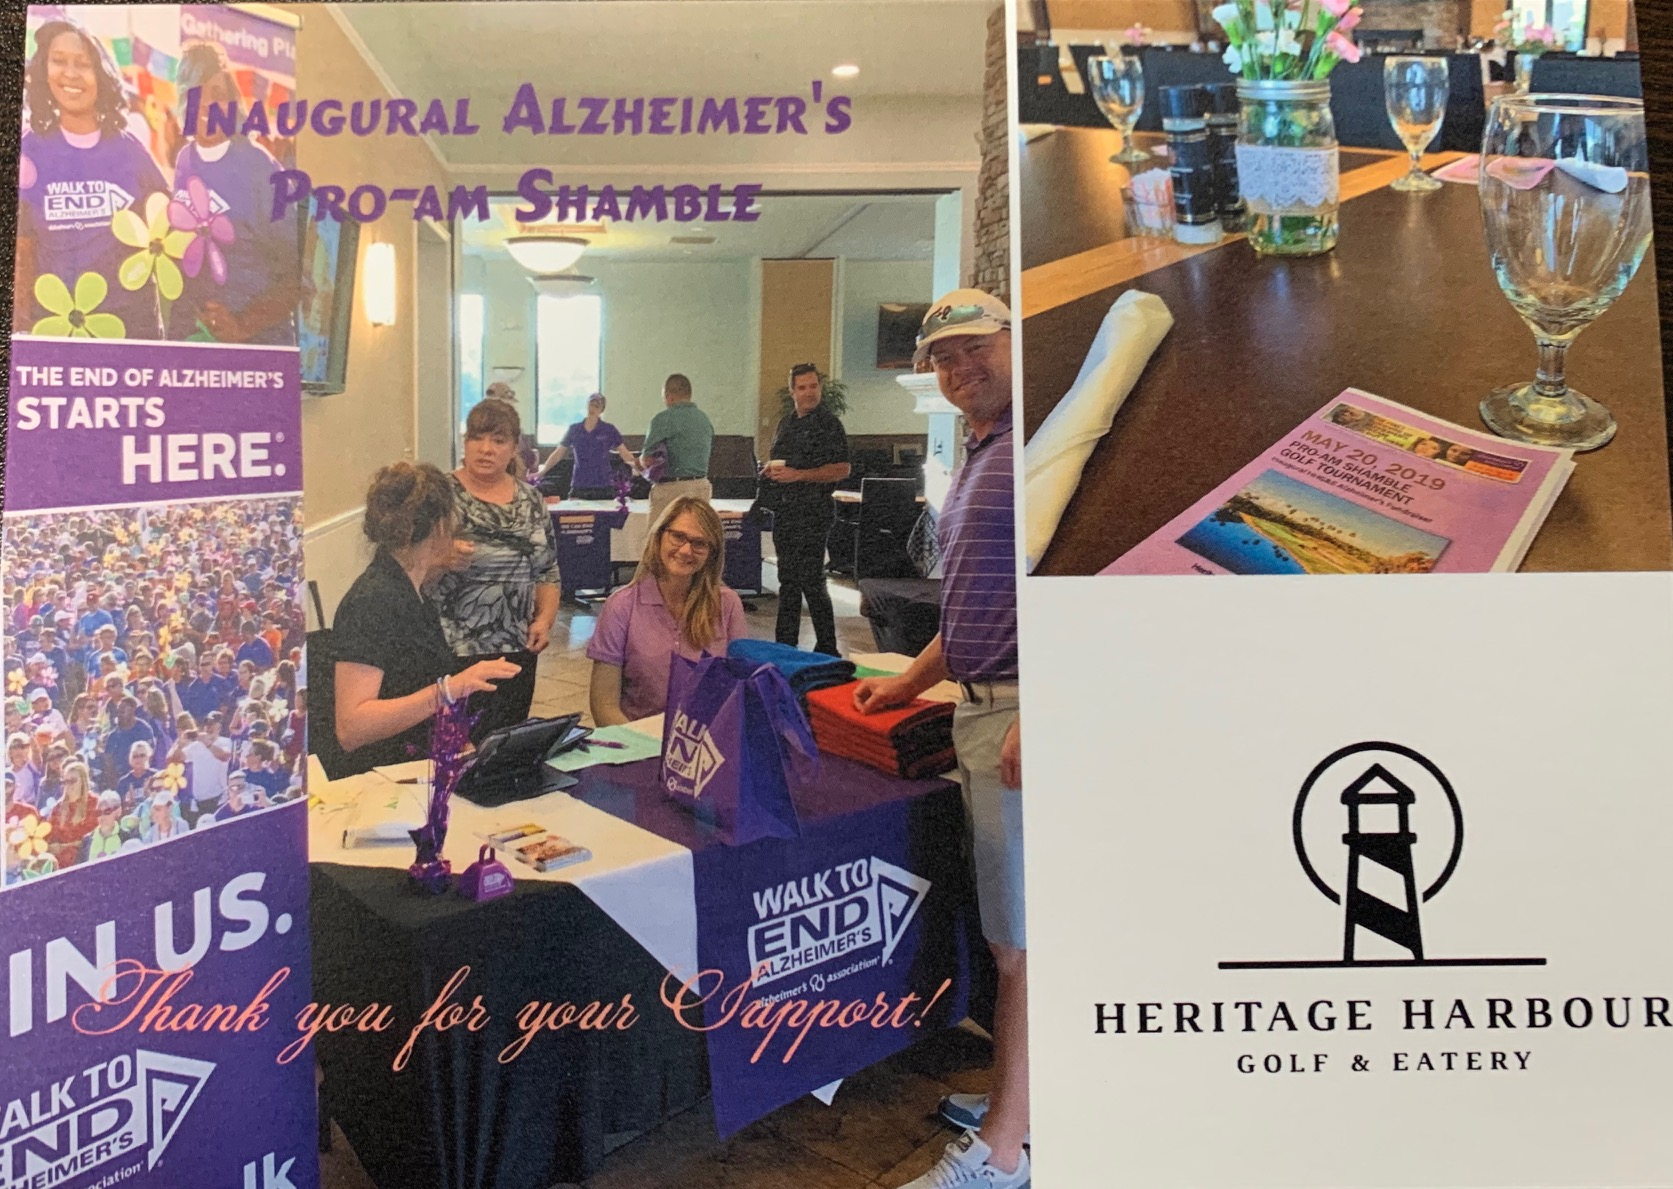 BRP Colleagues in Action pose with booth and table for Alzheimer's event